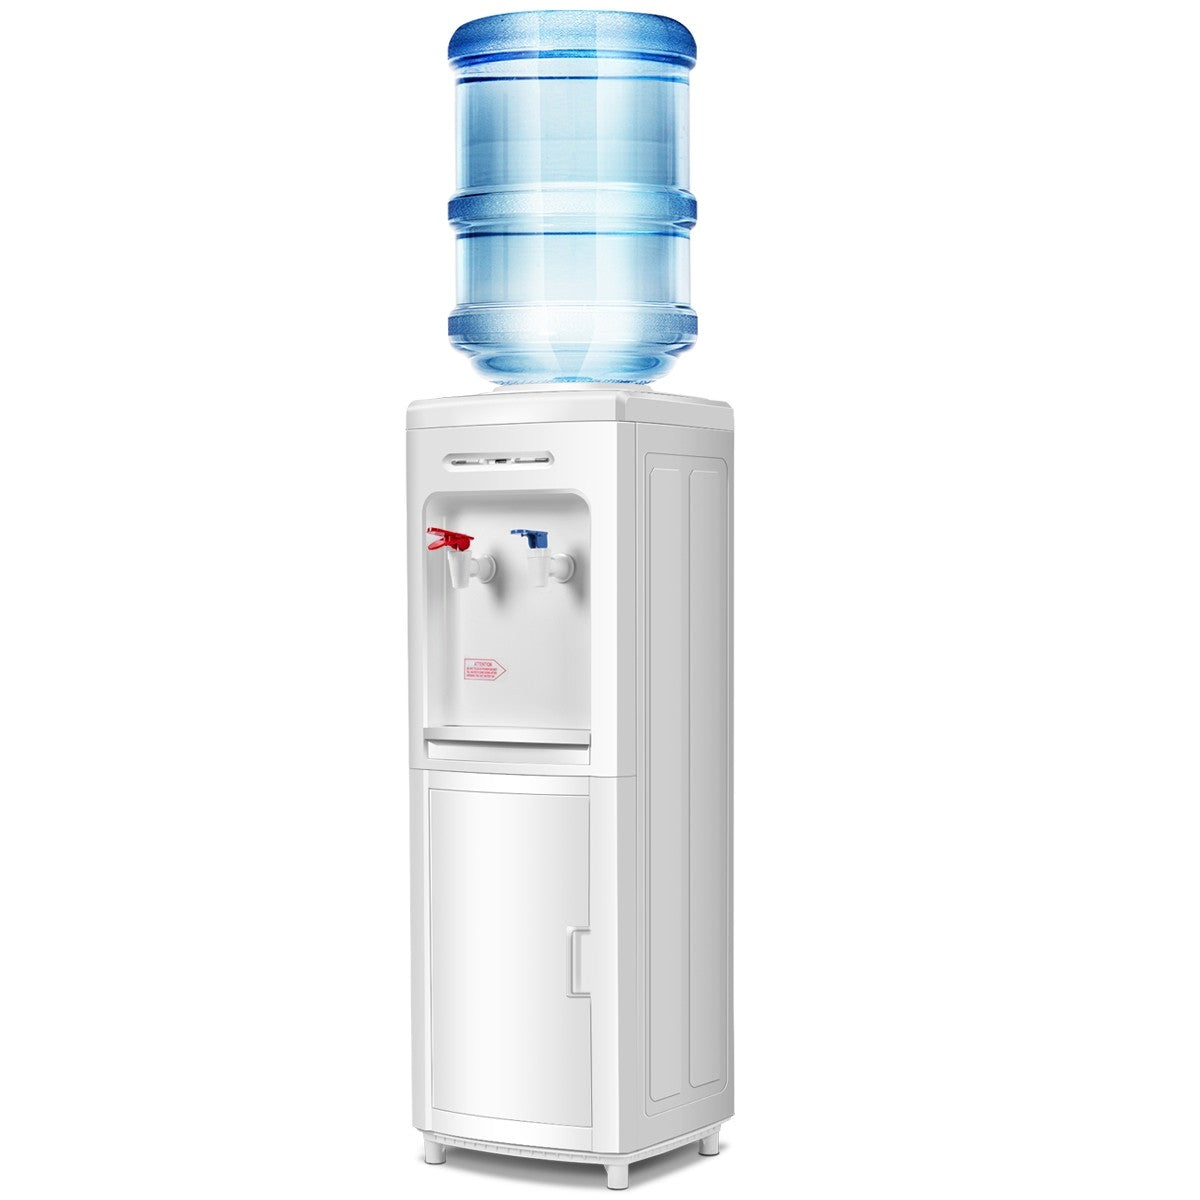 Premium Water Dispenser 5 Gallon Cold and Hot Water Cool Dispenser - Morealis